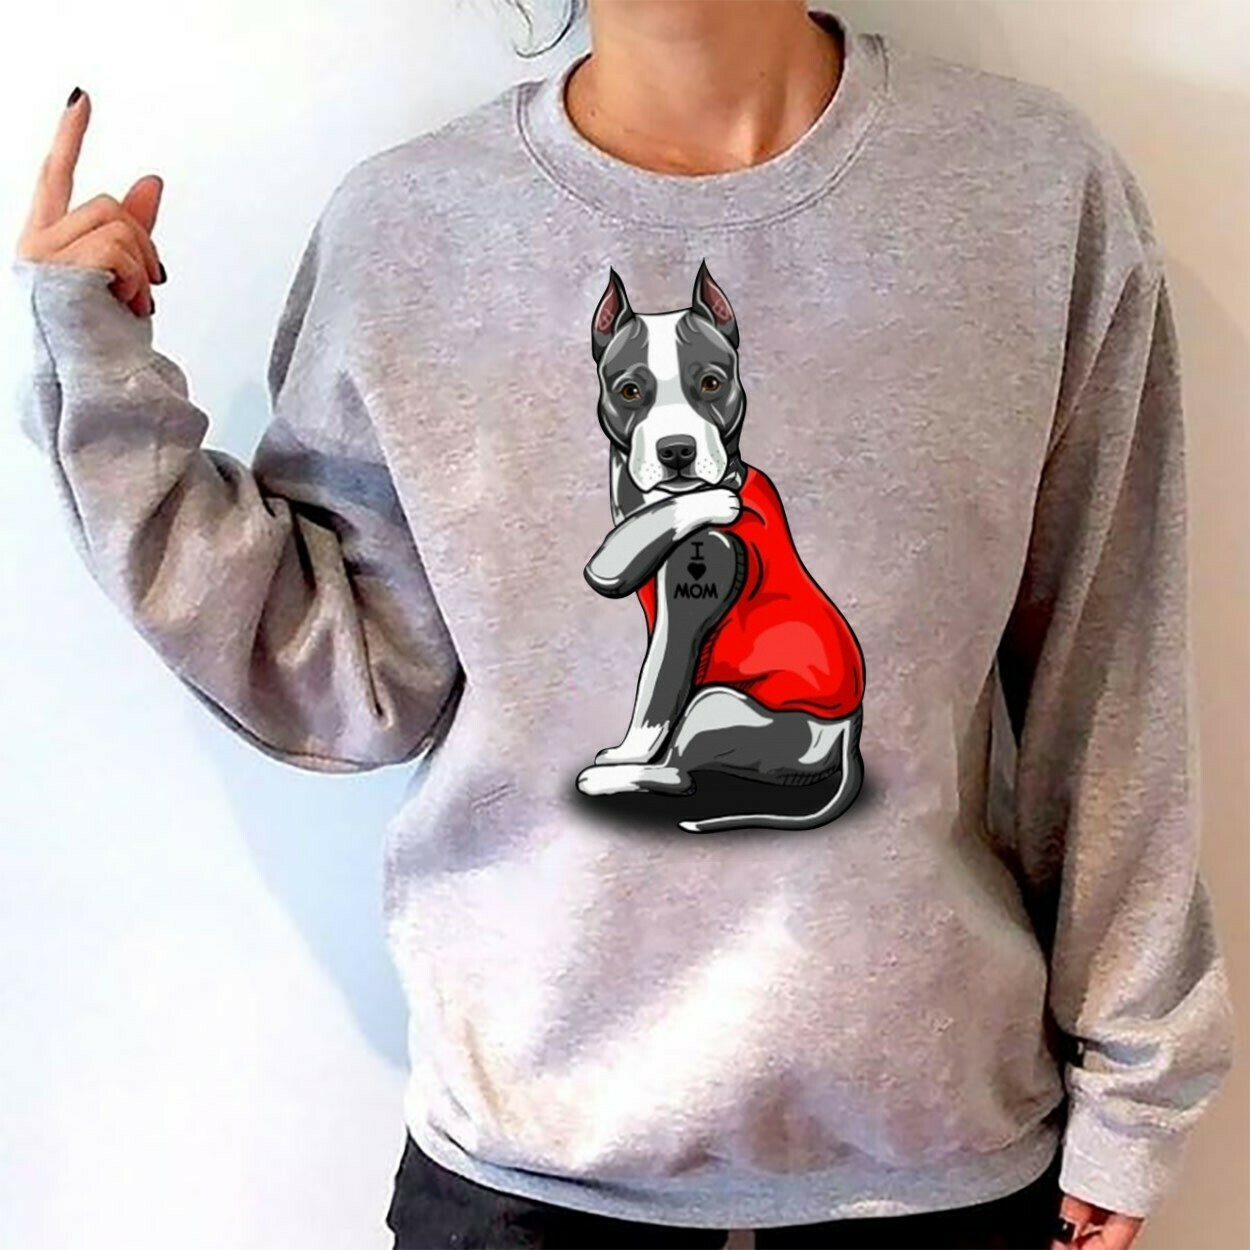 American Staffordshire Terrier Tattoos I Love Mom Funny Shirt T-Shirt Hoodie Sweatshirt Sweater Tee Kids Youth Gifts Jolly Family Gifts